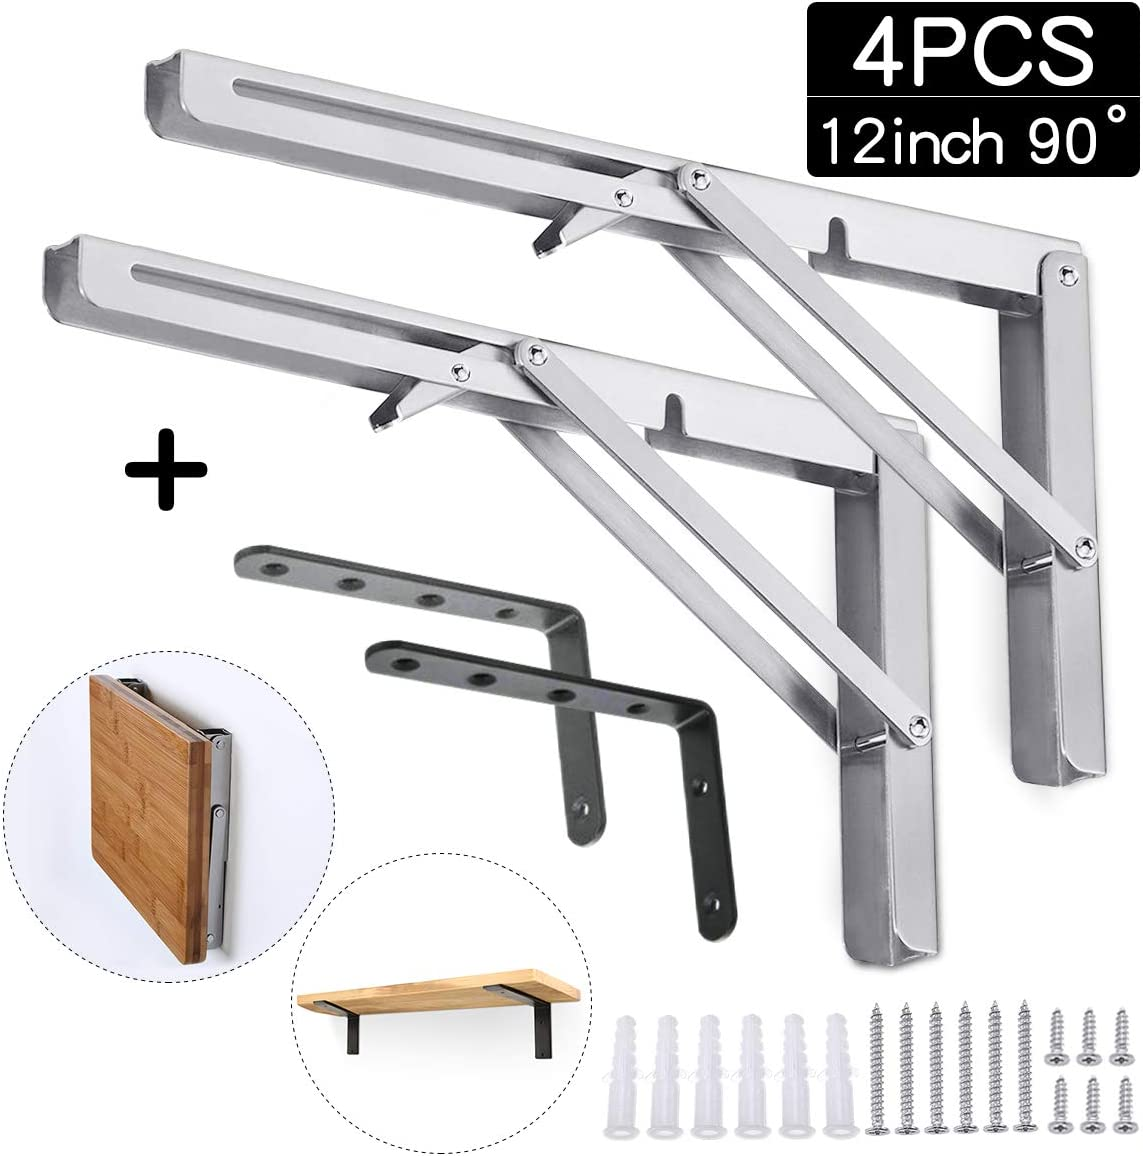 king do way Folding Shelf Brackets Stainless Steel Max Load 330lb with Black L Shaped Bracket for Table Work Bench, Space Saving DIY Bracket